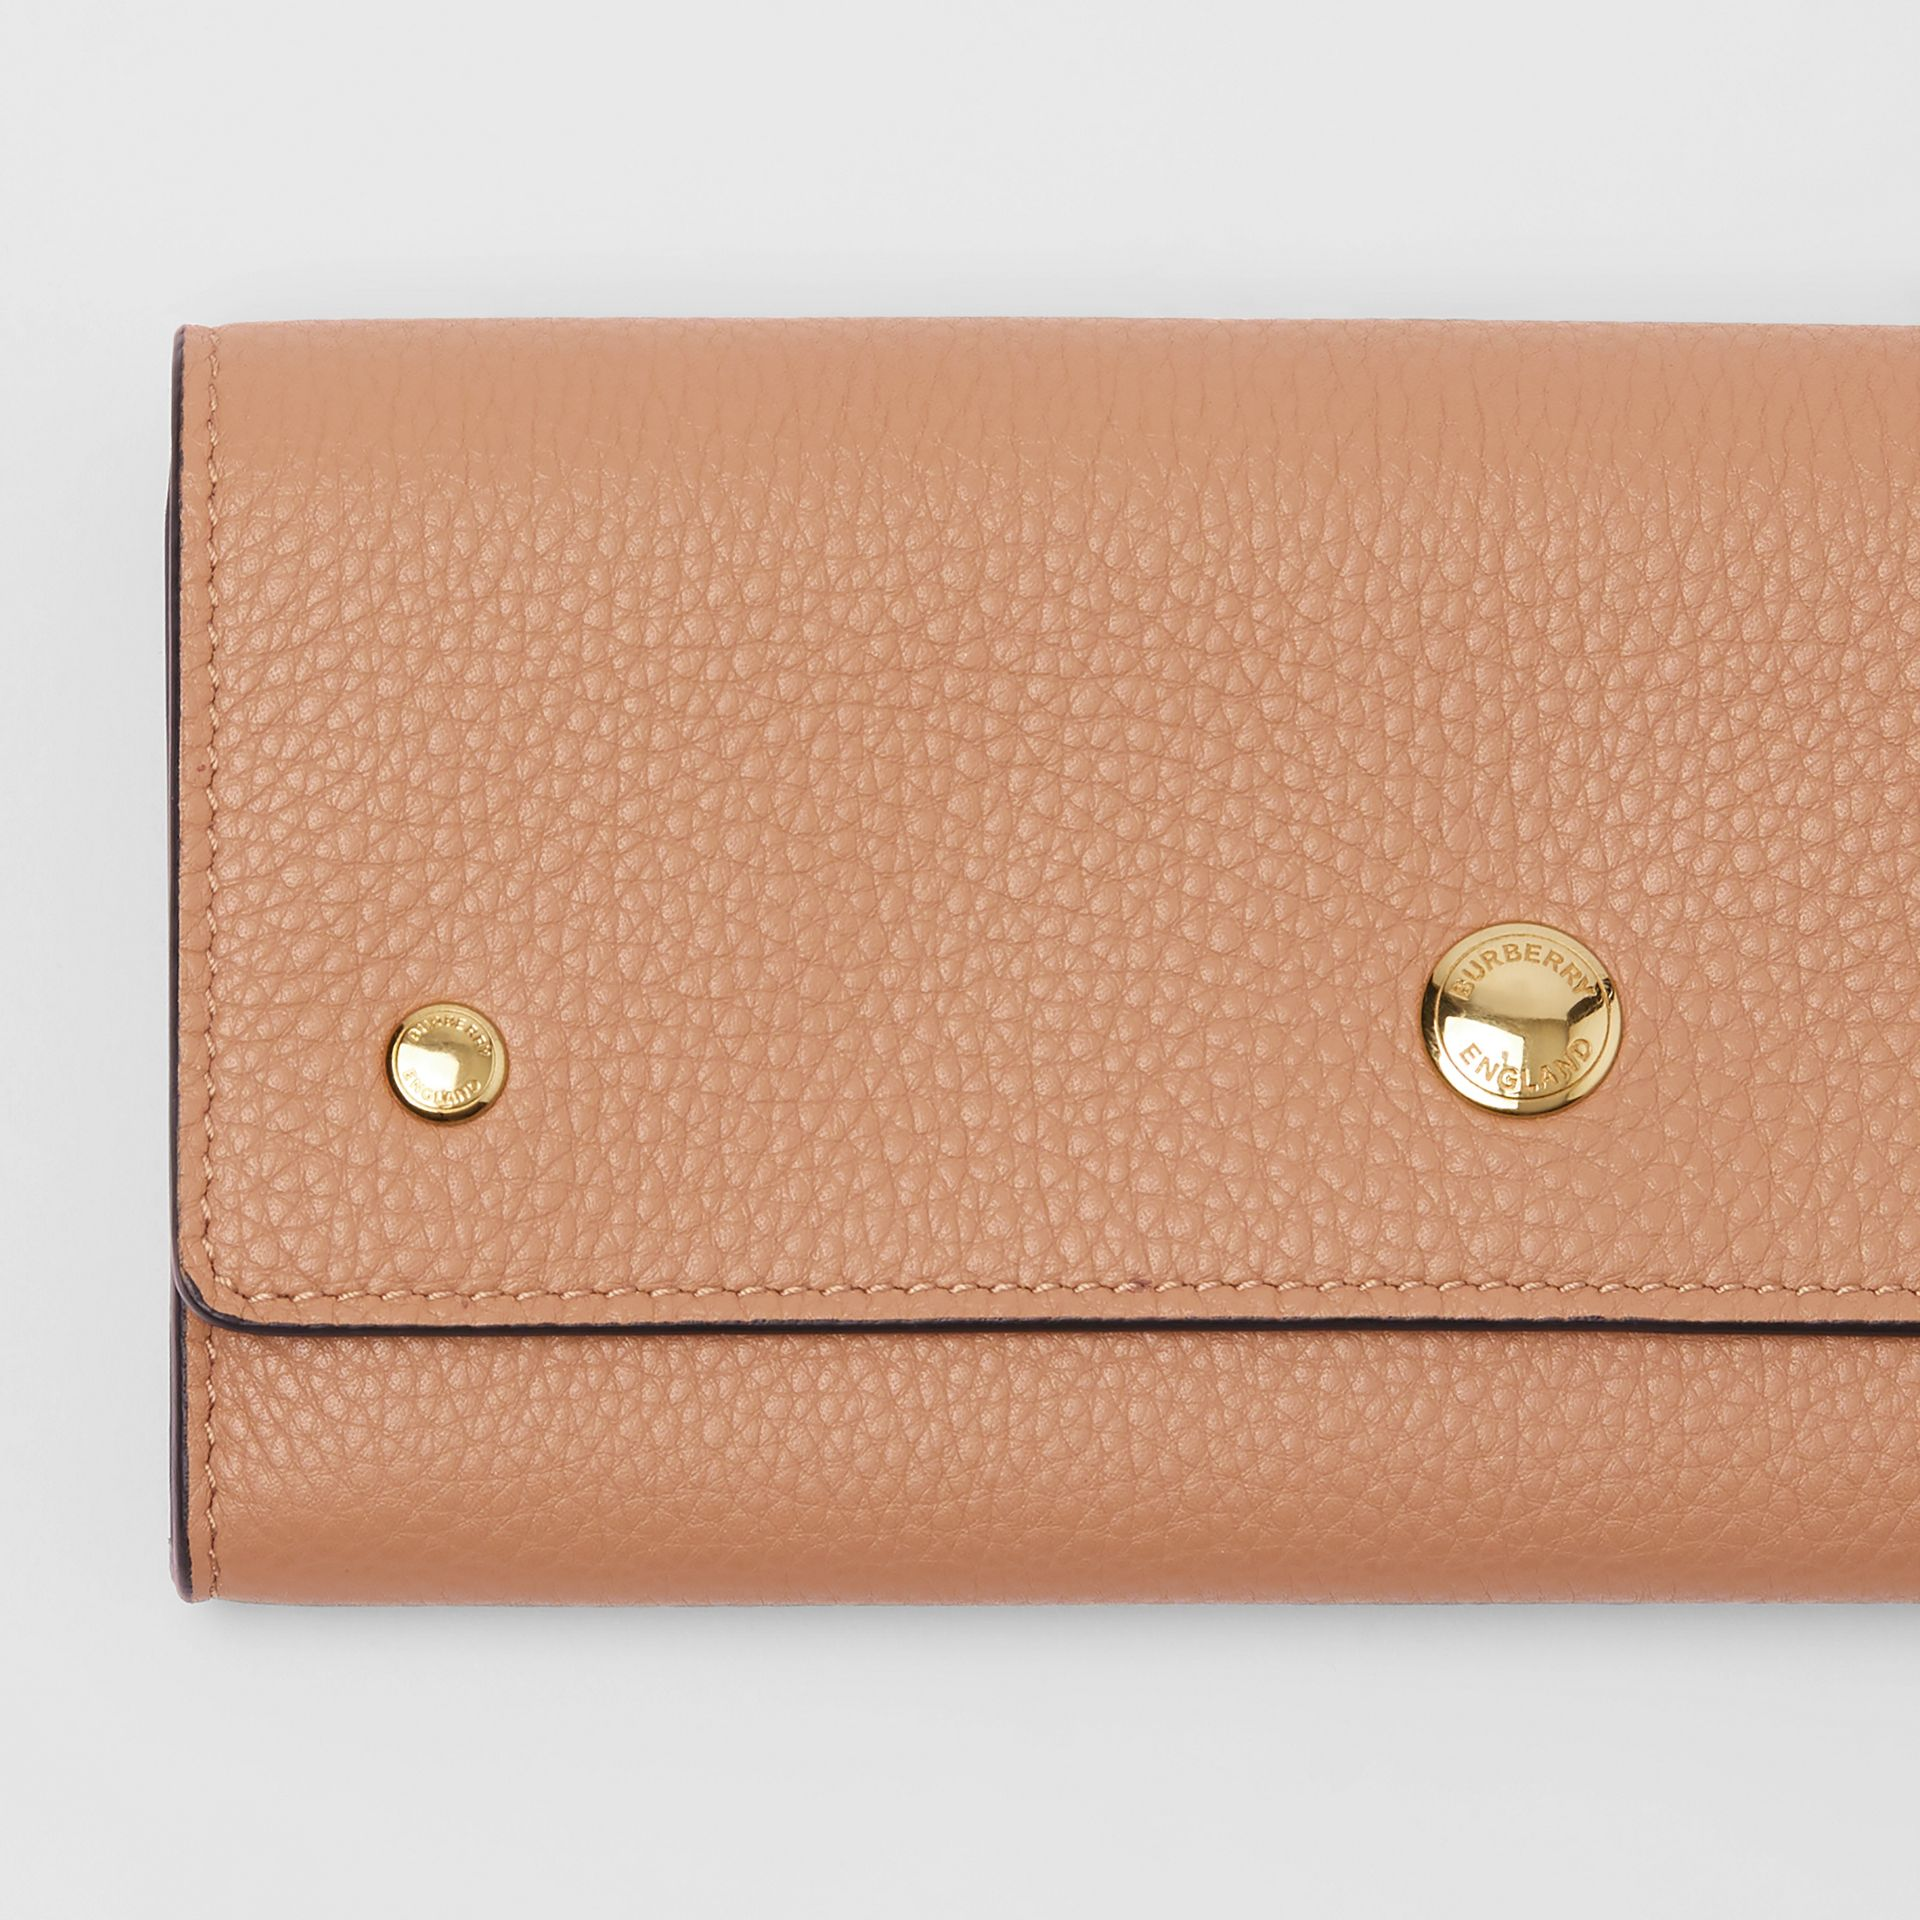 Grainy Leather Continental Wallet in Light Camel - Women | Burberry Australia - gallery image 1